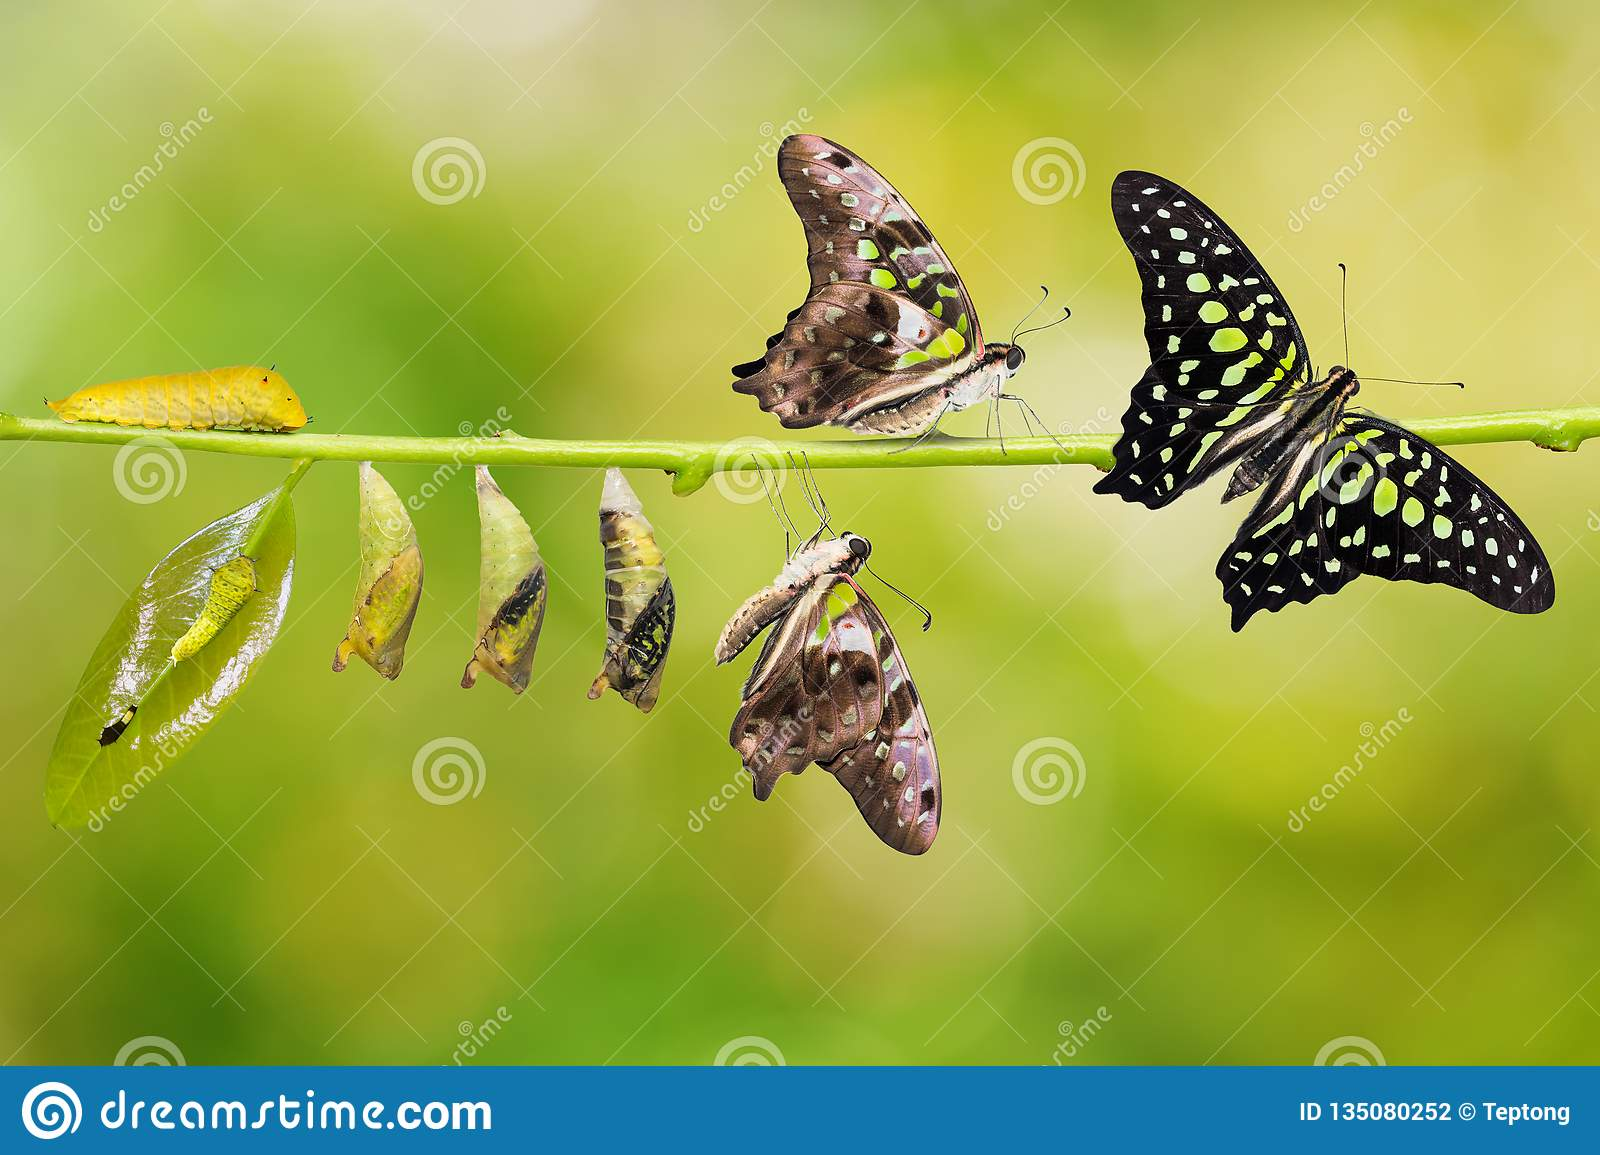 Tailed Jay Graphium agamemnon butterfly life cycle